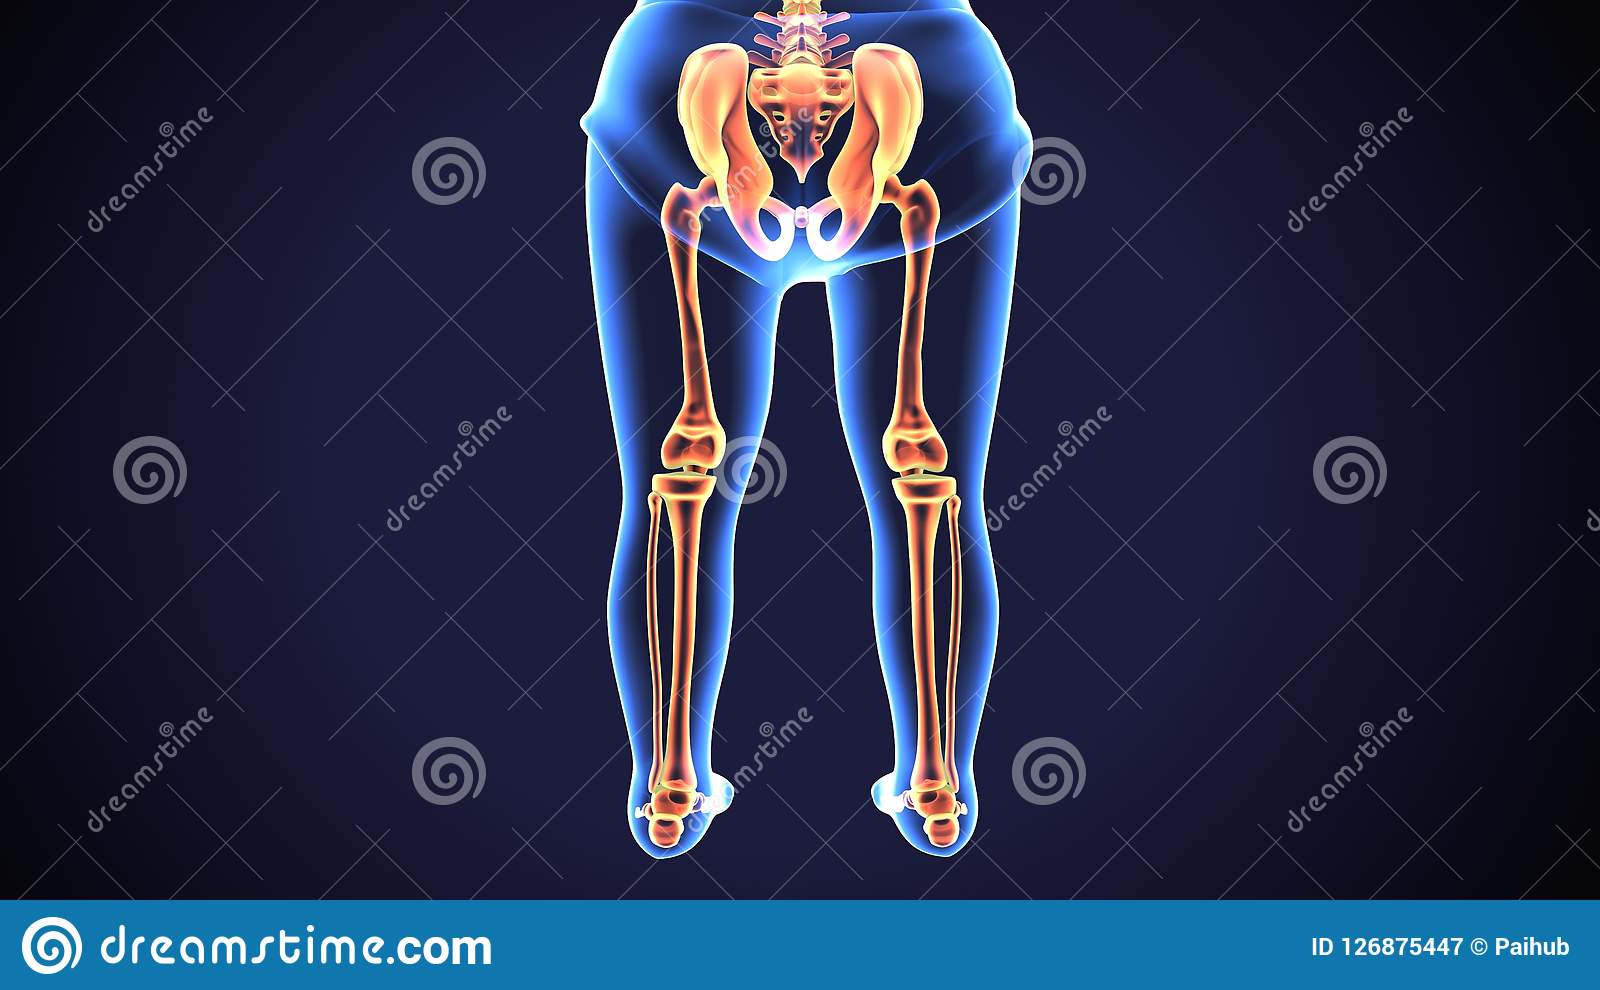 the human leg, in the general meaning, is the entire lower limb of the human  body, including the foot, thigh and even the hip or gluteal region